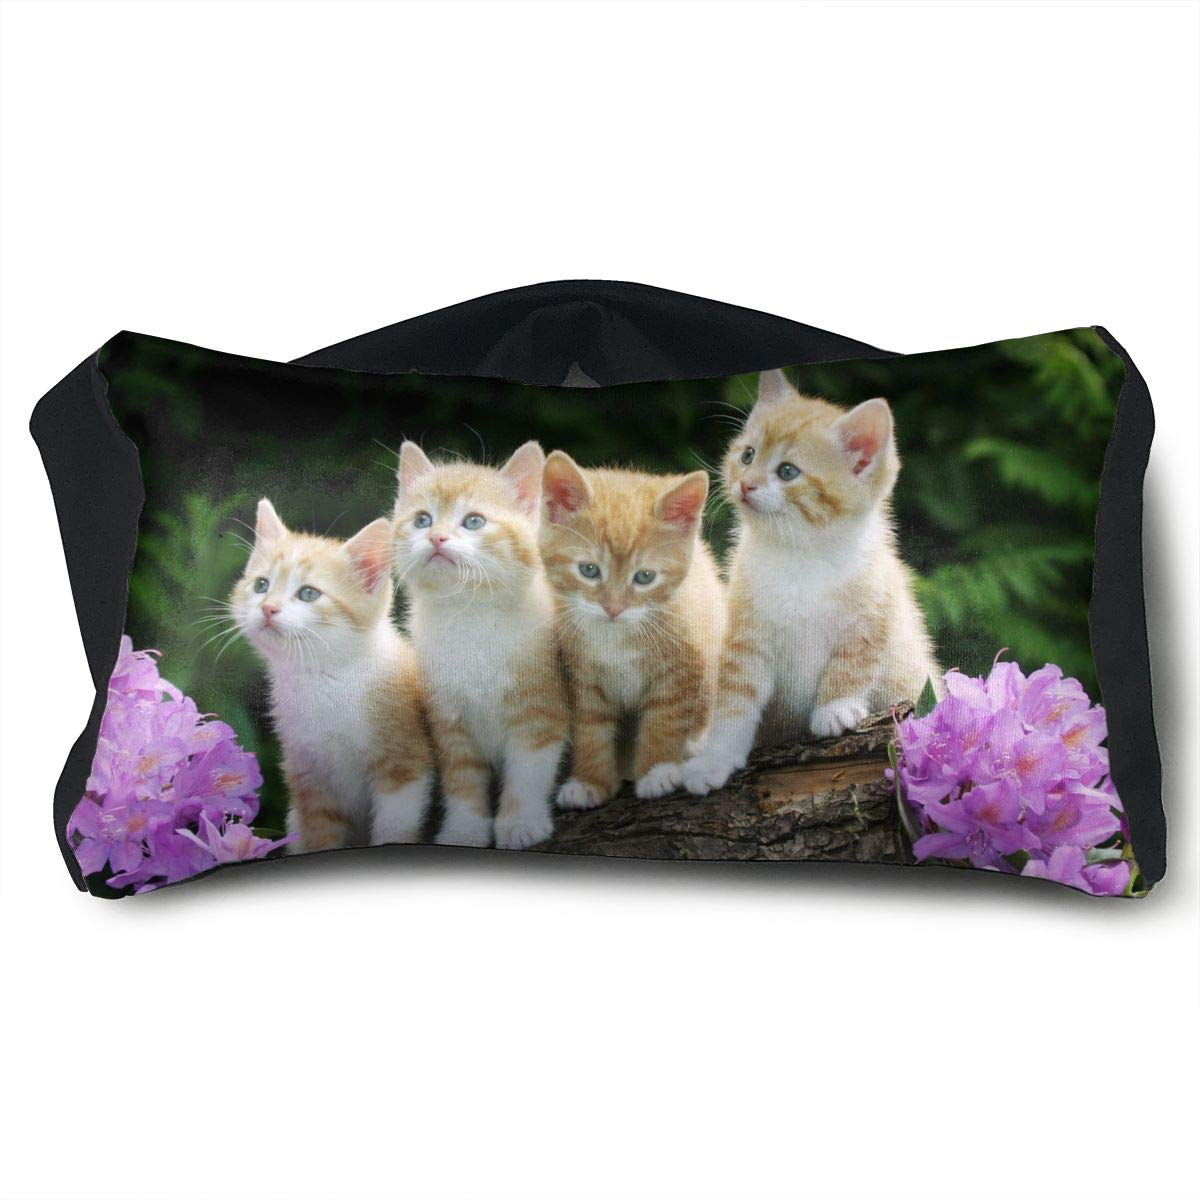 Cats Animal Voyage Pillow and Eye Mask Travel Sleep Pillow Neck Support Pillows